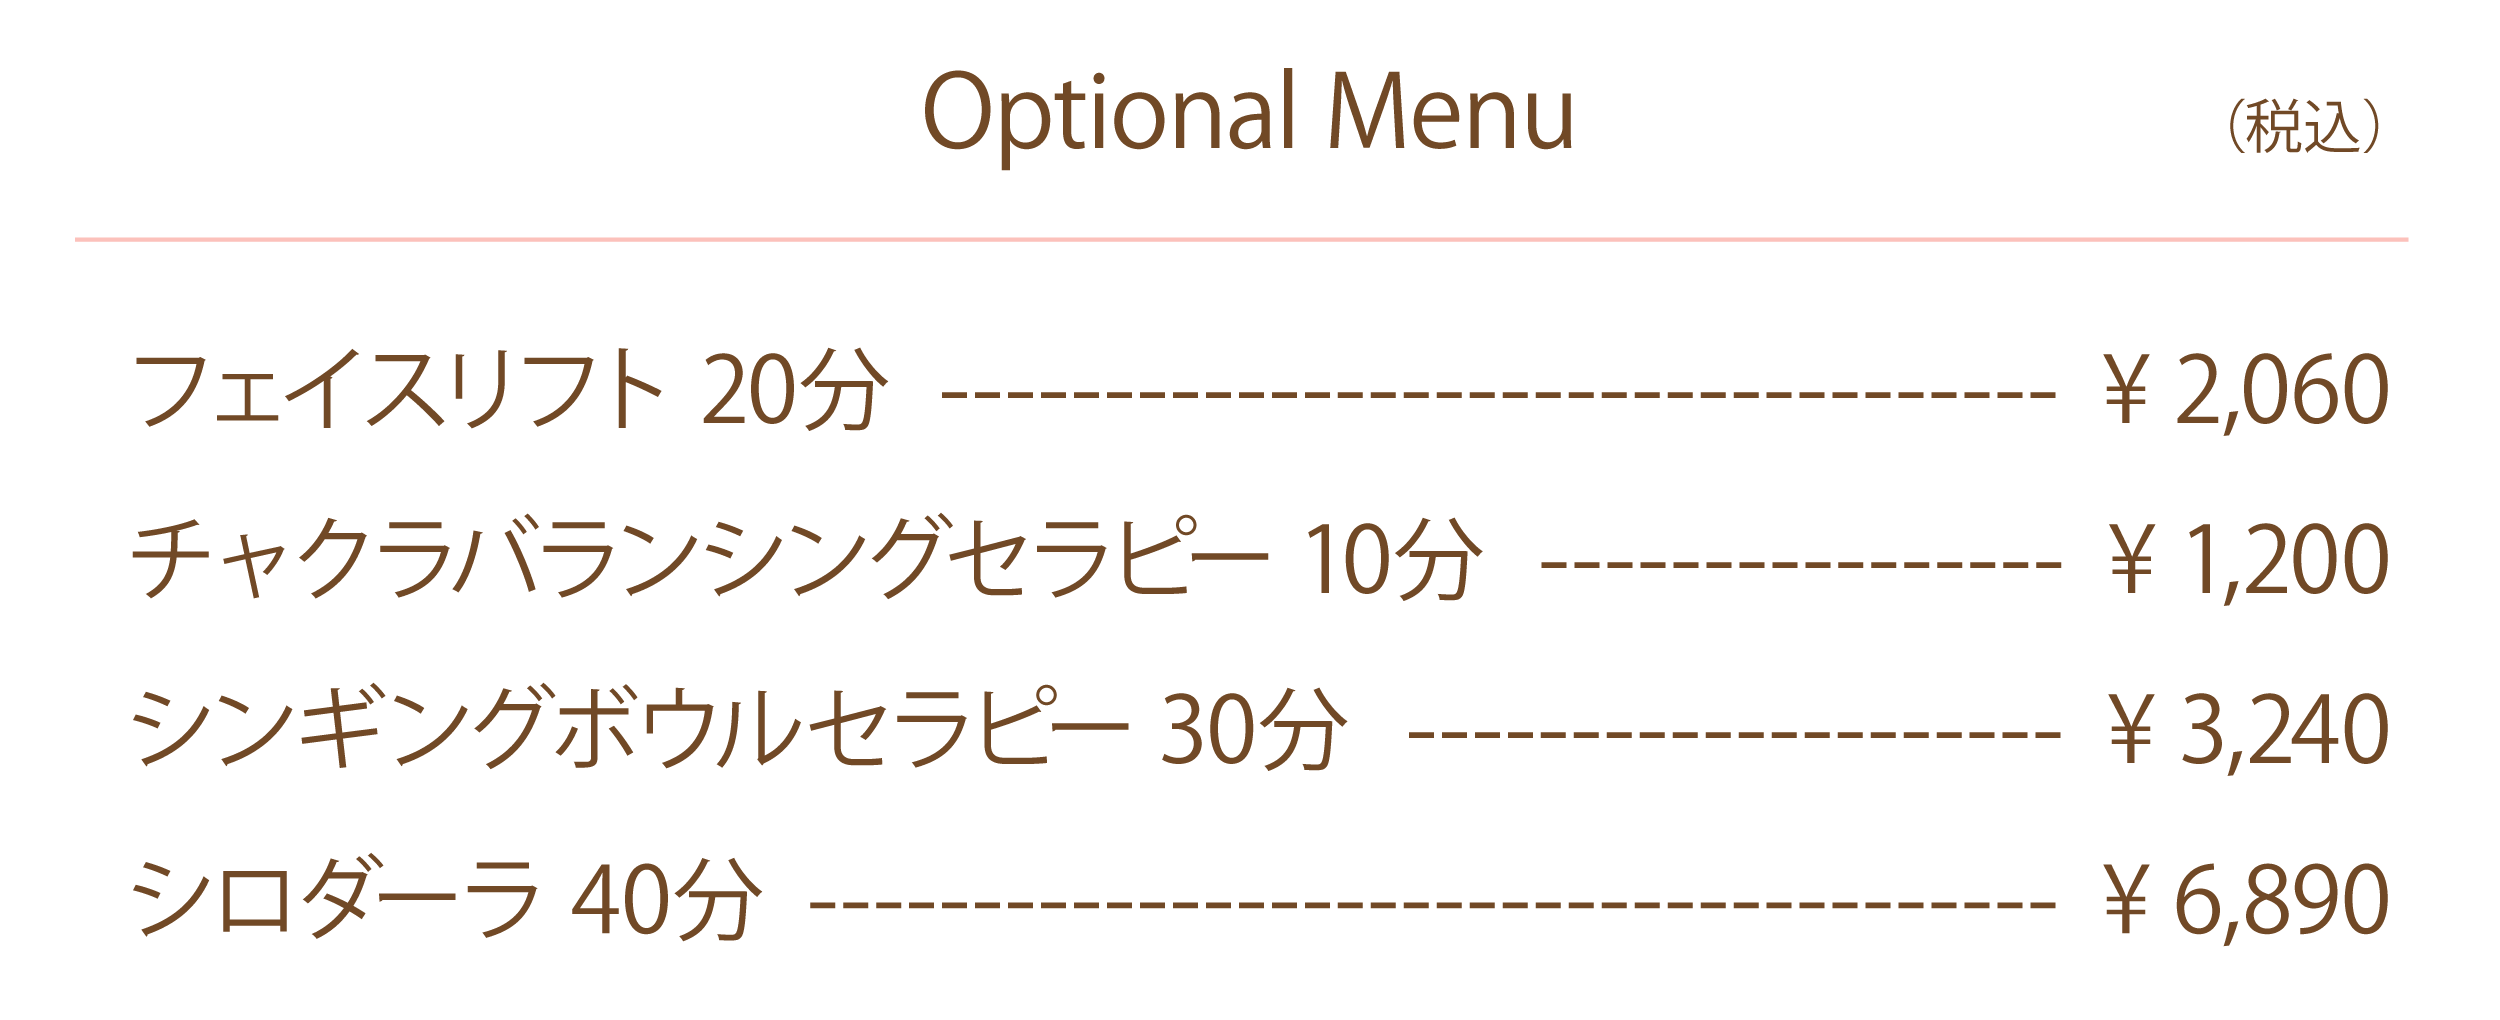 Optional Menu